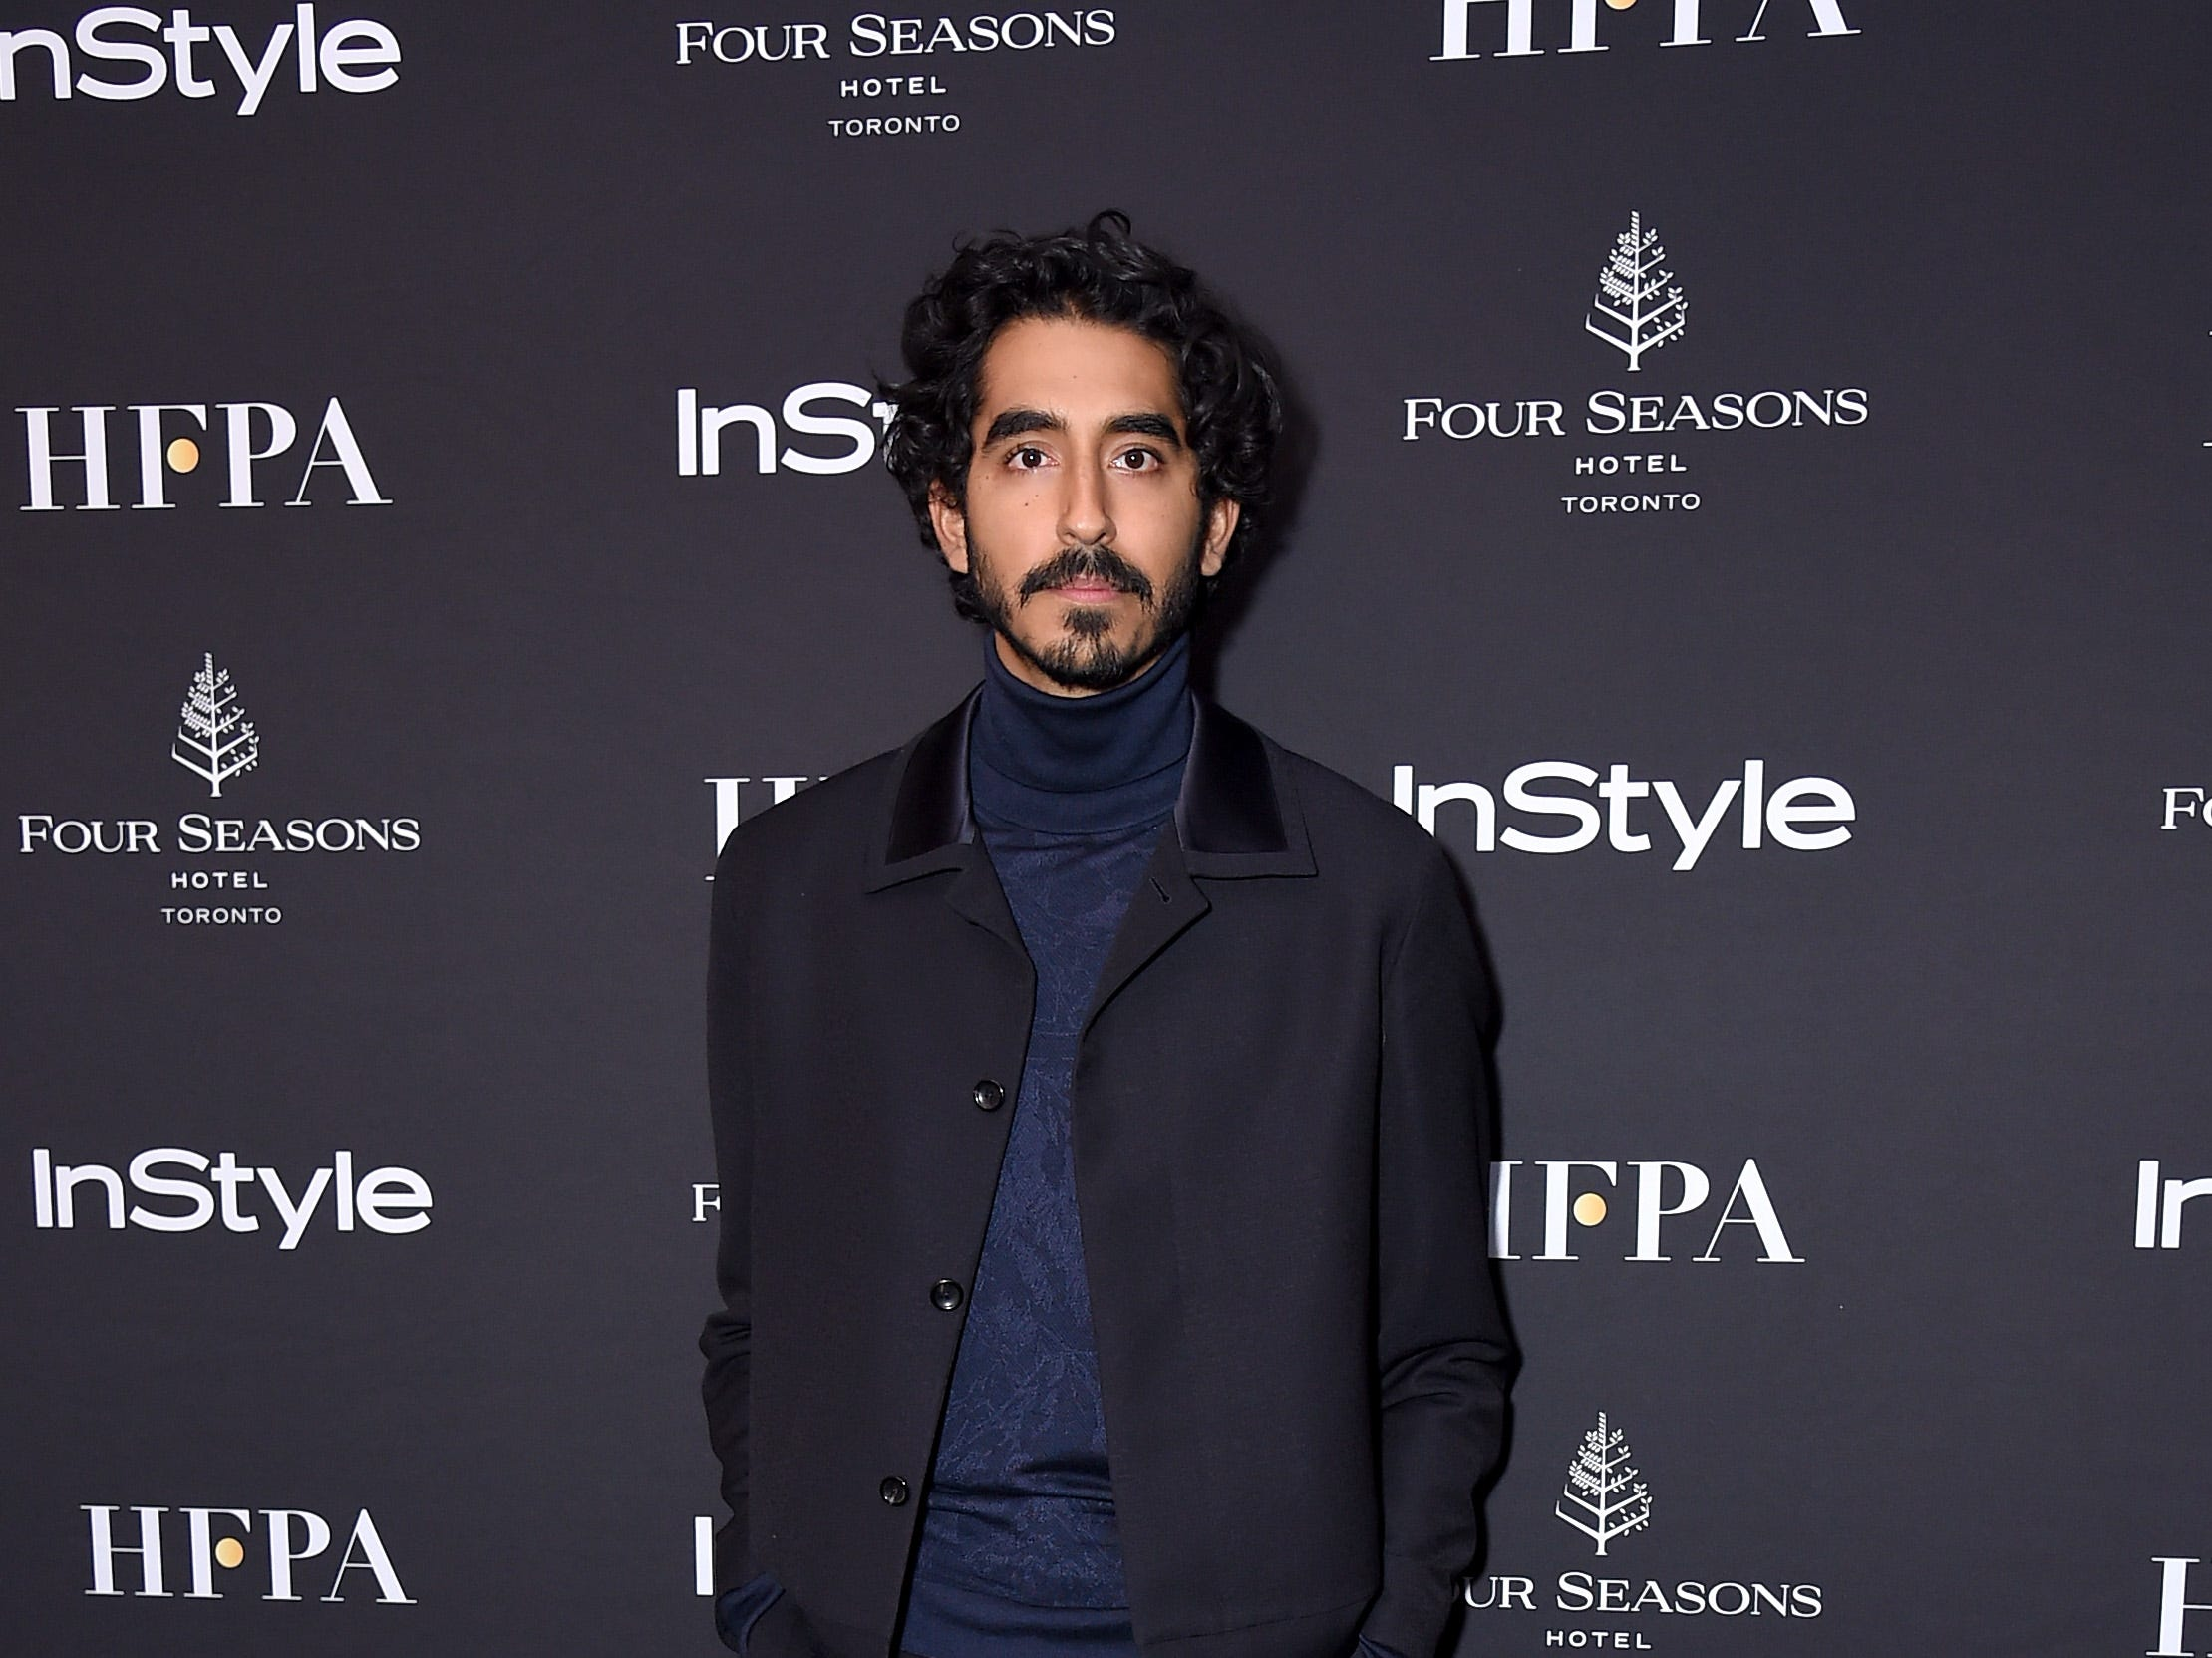 TORONTO, ON - SEPTEMBER 08:  Dev Patel attends The Hollywood Foreign Press Association and InStyle Party during 2018 Toronto International Film Festival at Four Seasons Hotel on September 8, 2018 in Toronto, Canada.  (Photo by Michael Loccisano/Getty Images,) ORG XMIT: 775218497 ORIG FILE ID: 1029630830